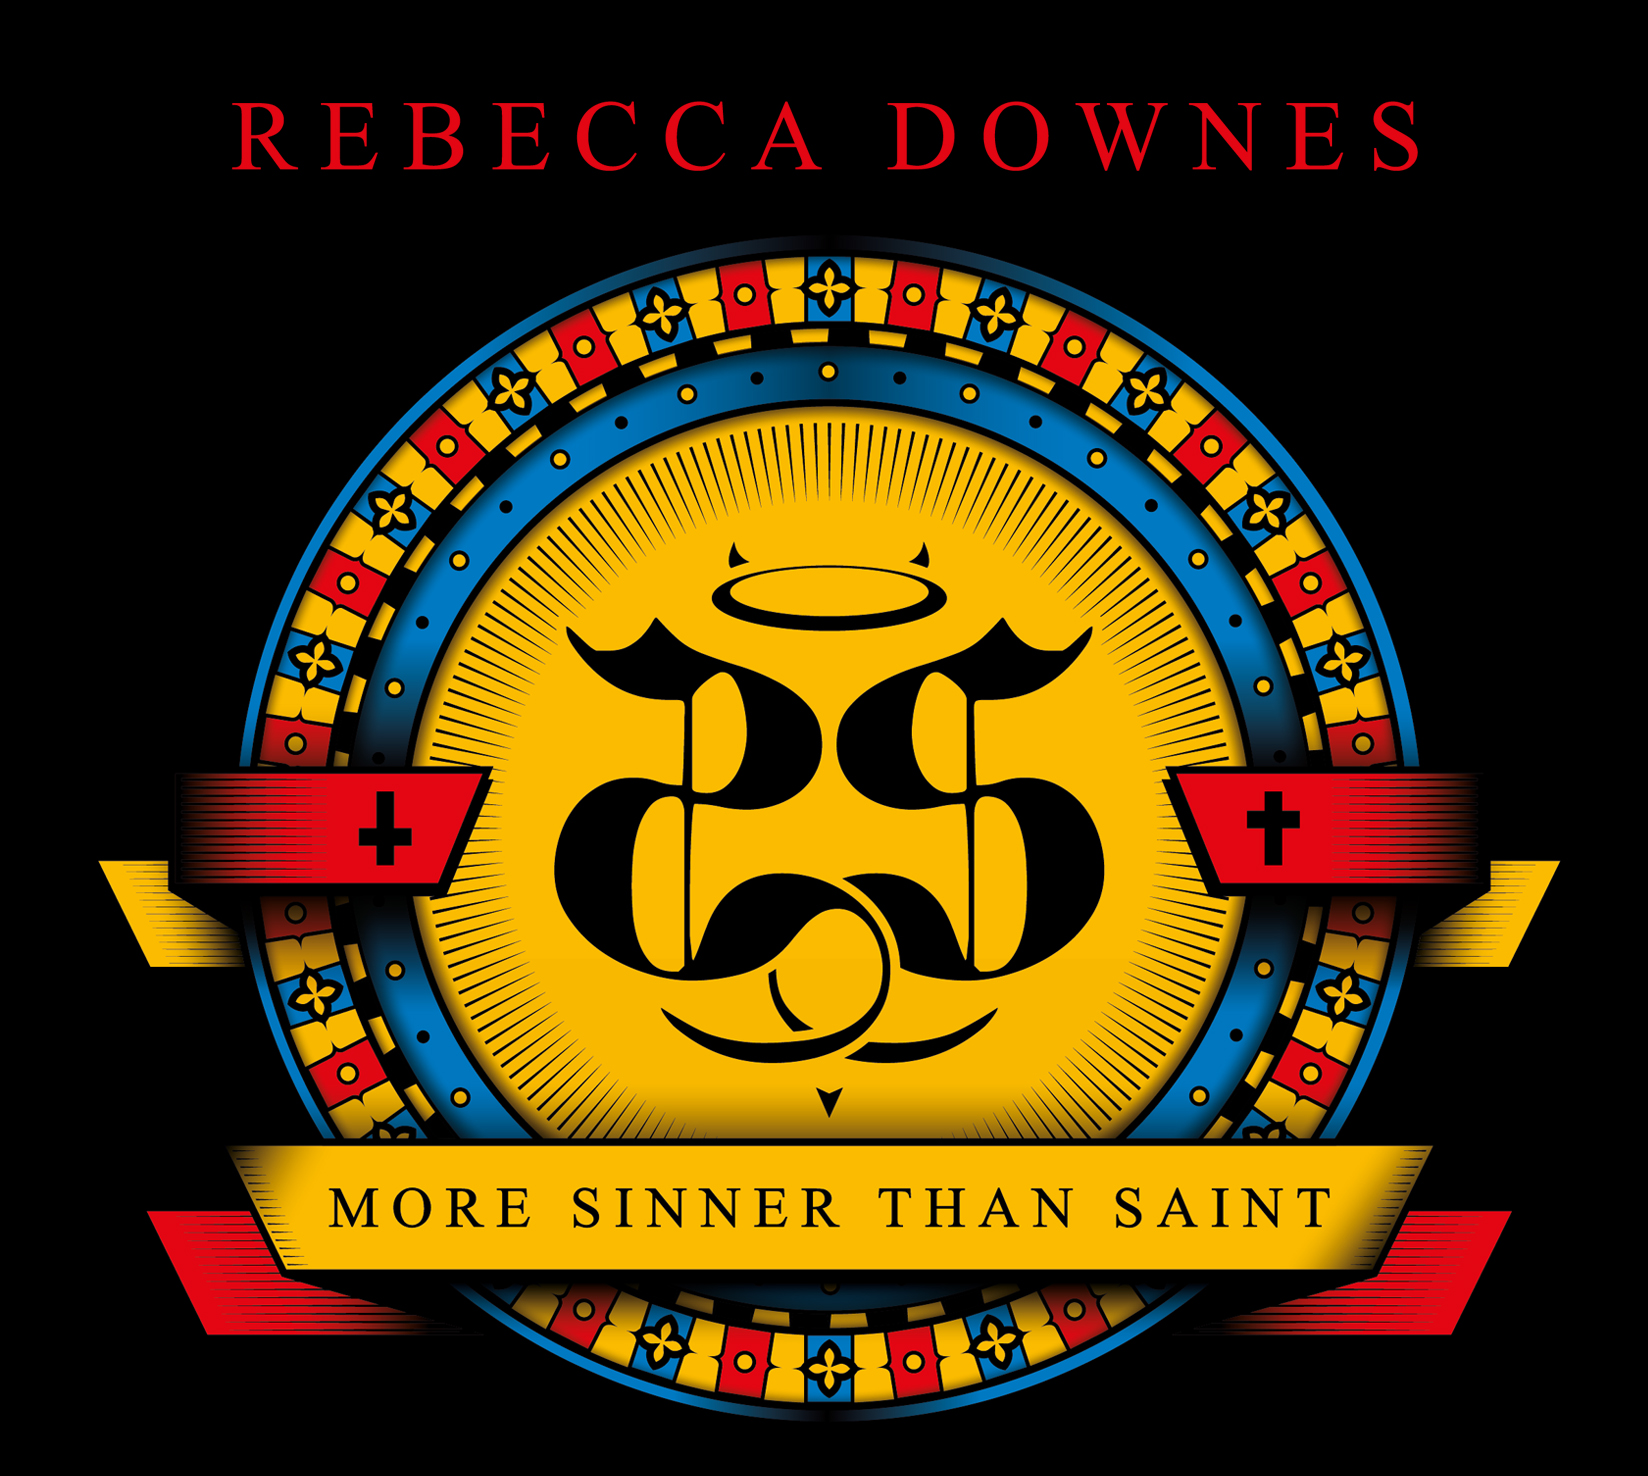 Are you More Sinner Than Saint we Ask Rebecca Downes